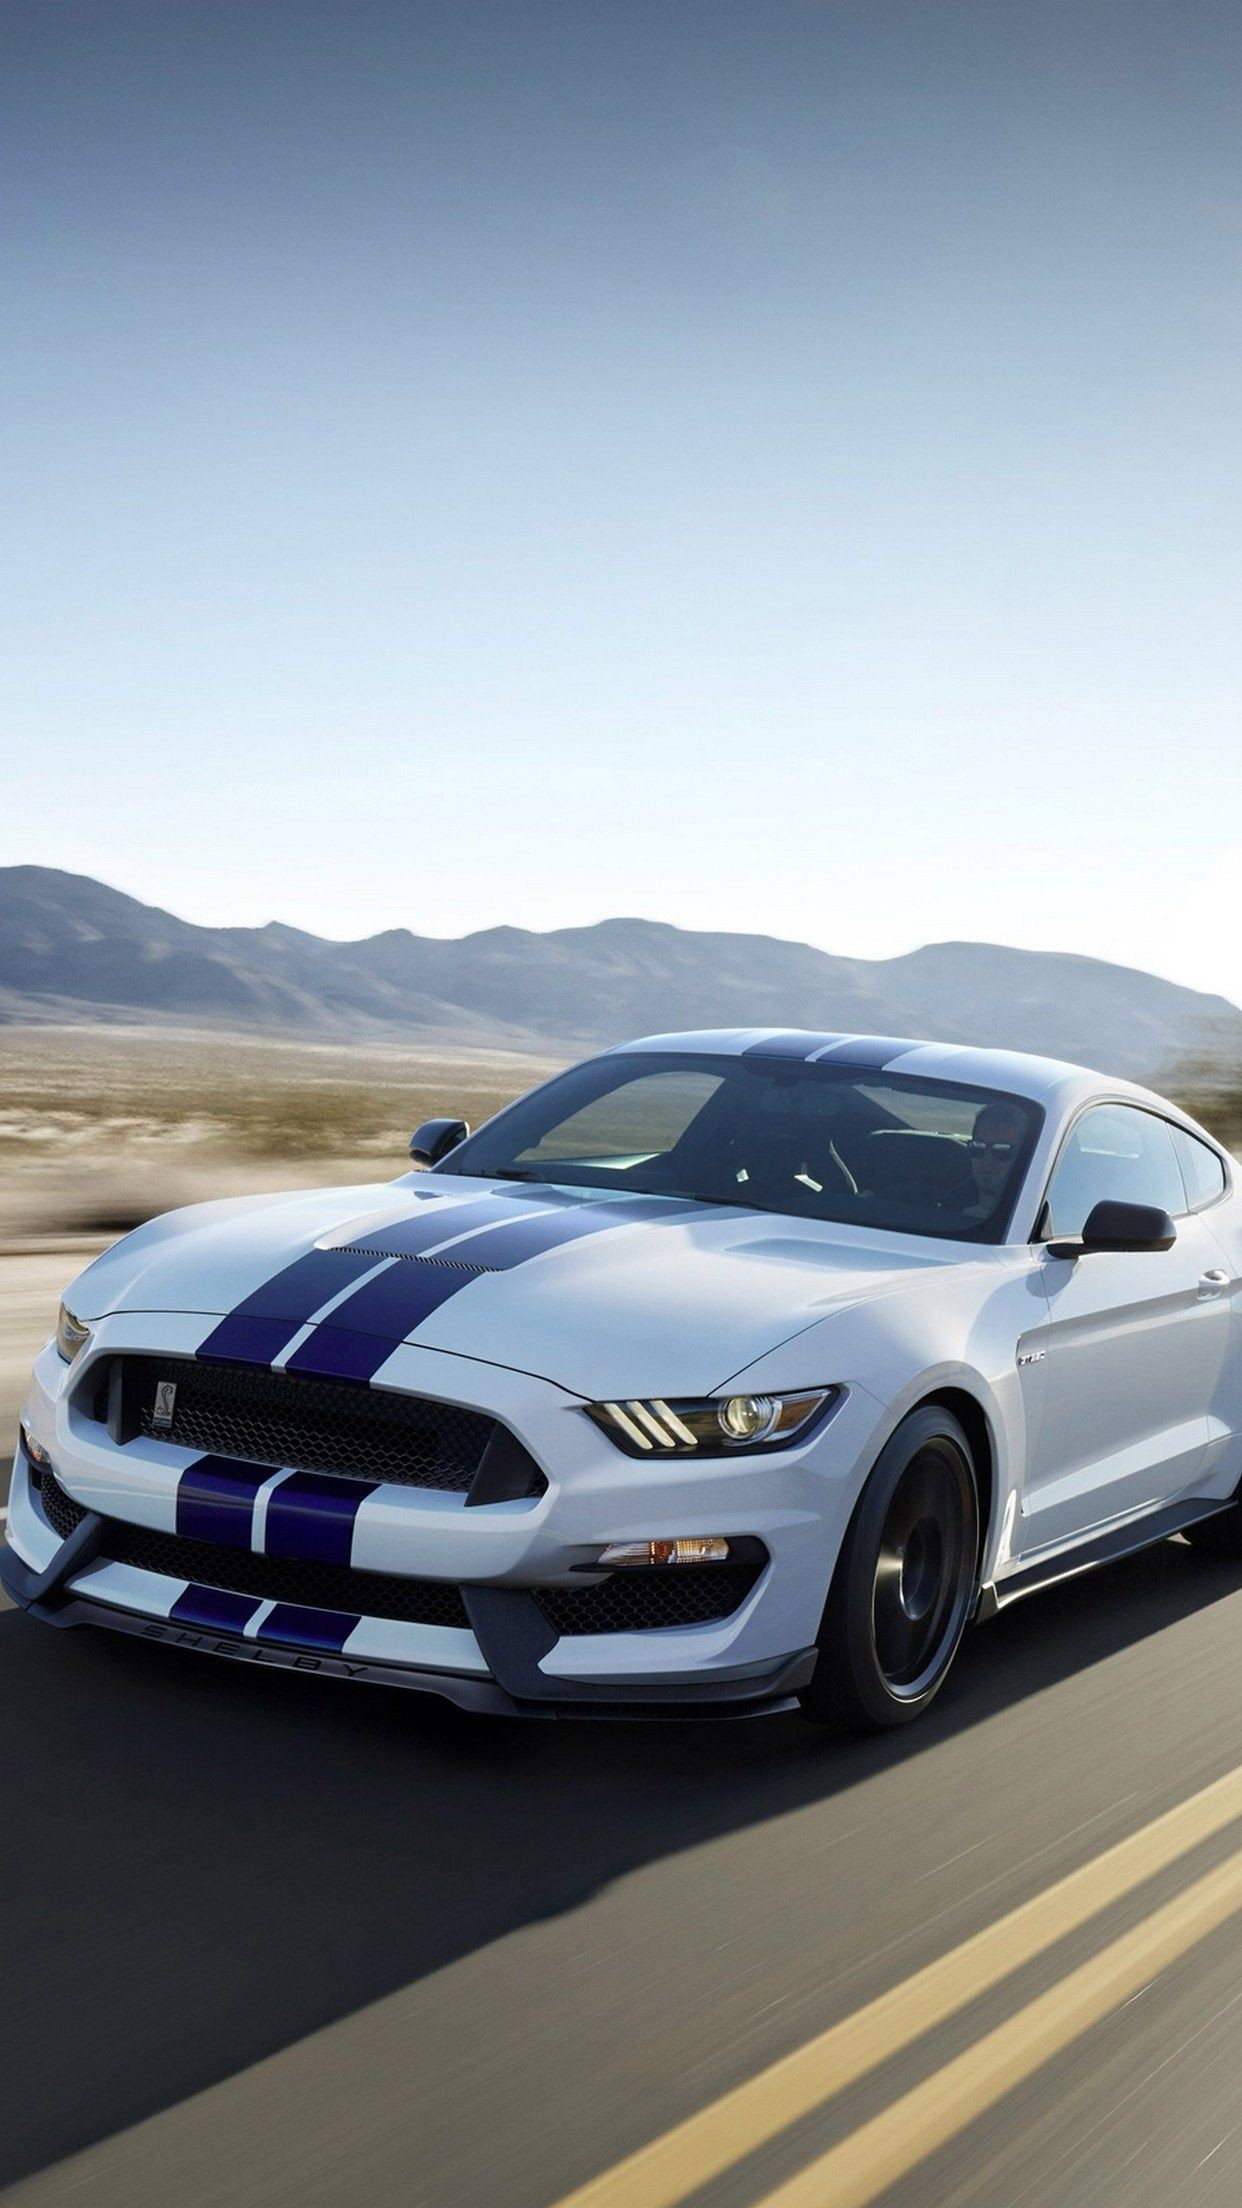 1200x2133 Free Download Wallpaper Mustang Shelby Wallpaper Iphone 210062 Hd Wallpaper Backgrounds Download